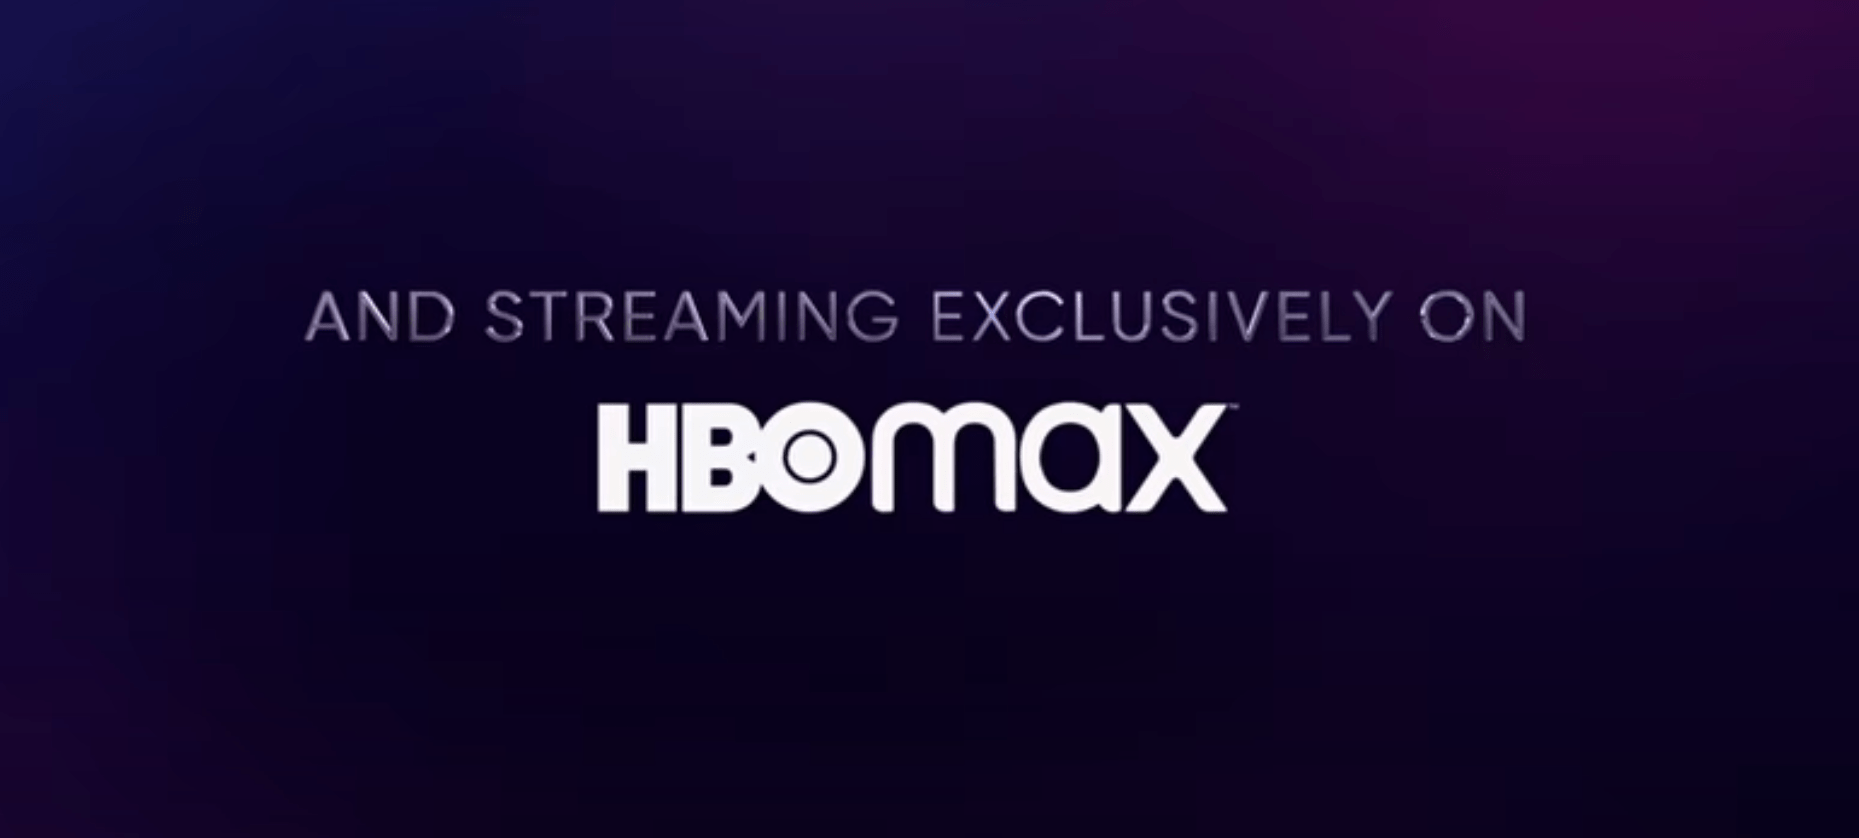 HBO Max Streaming App Is Still Not Available To Download On The PlayStation 5 Console